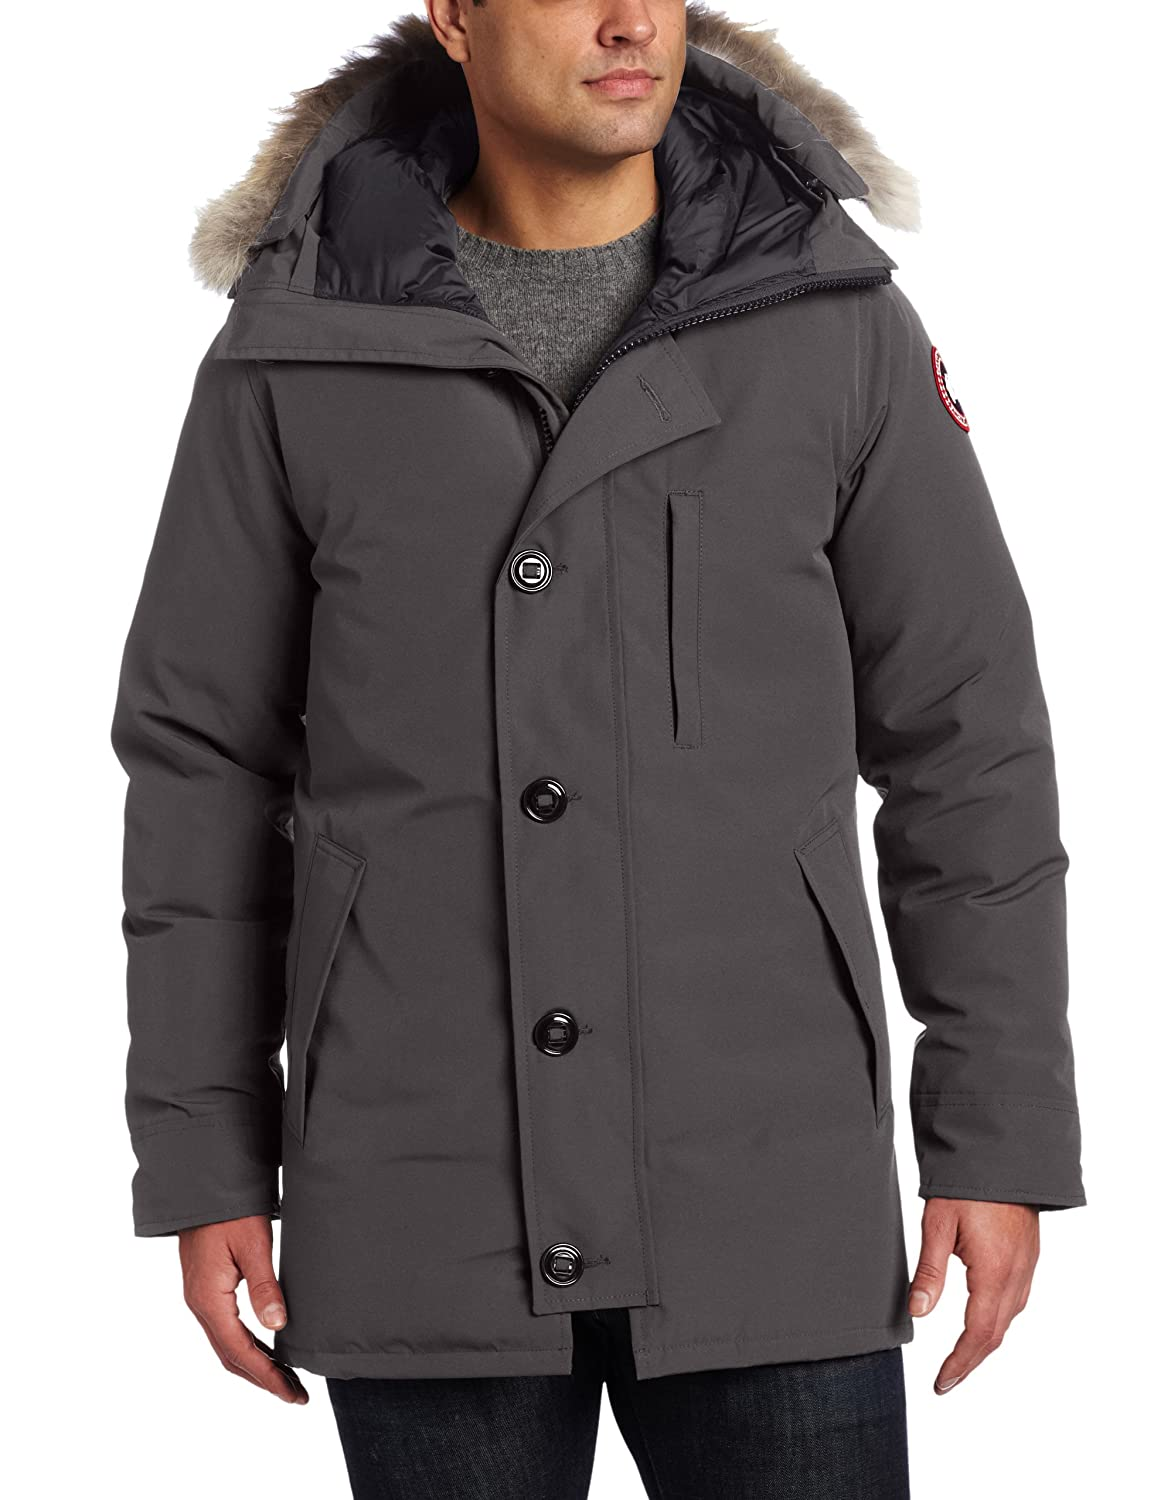 Canada Goose' expedition parka removable fur